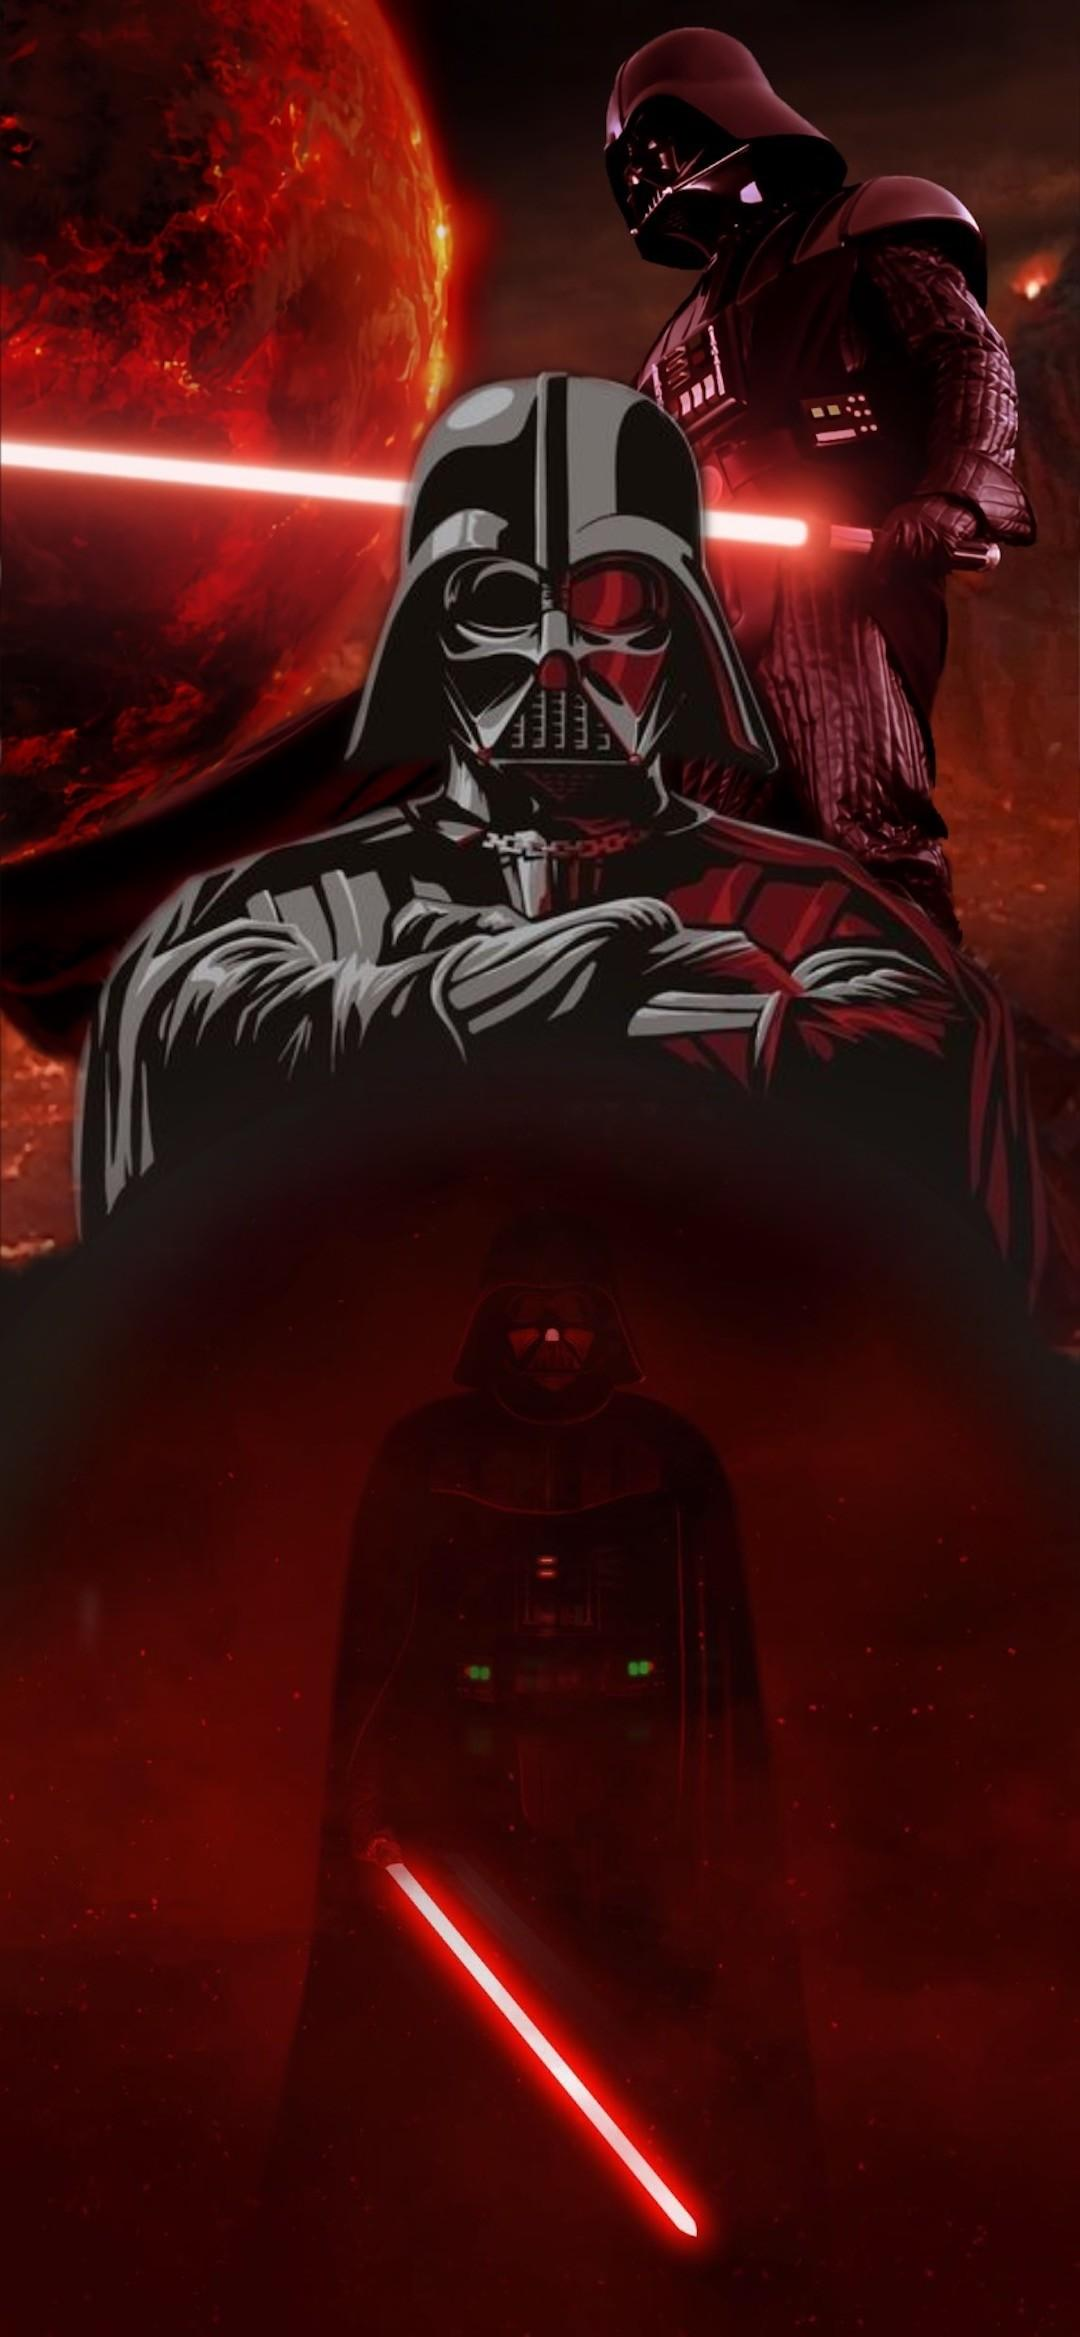 Darth Vader Star Wars Art Wallpapers Wallpaper Cave